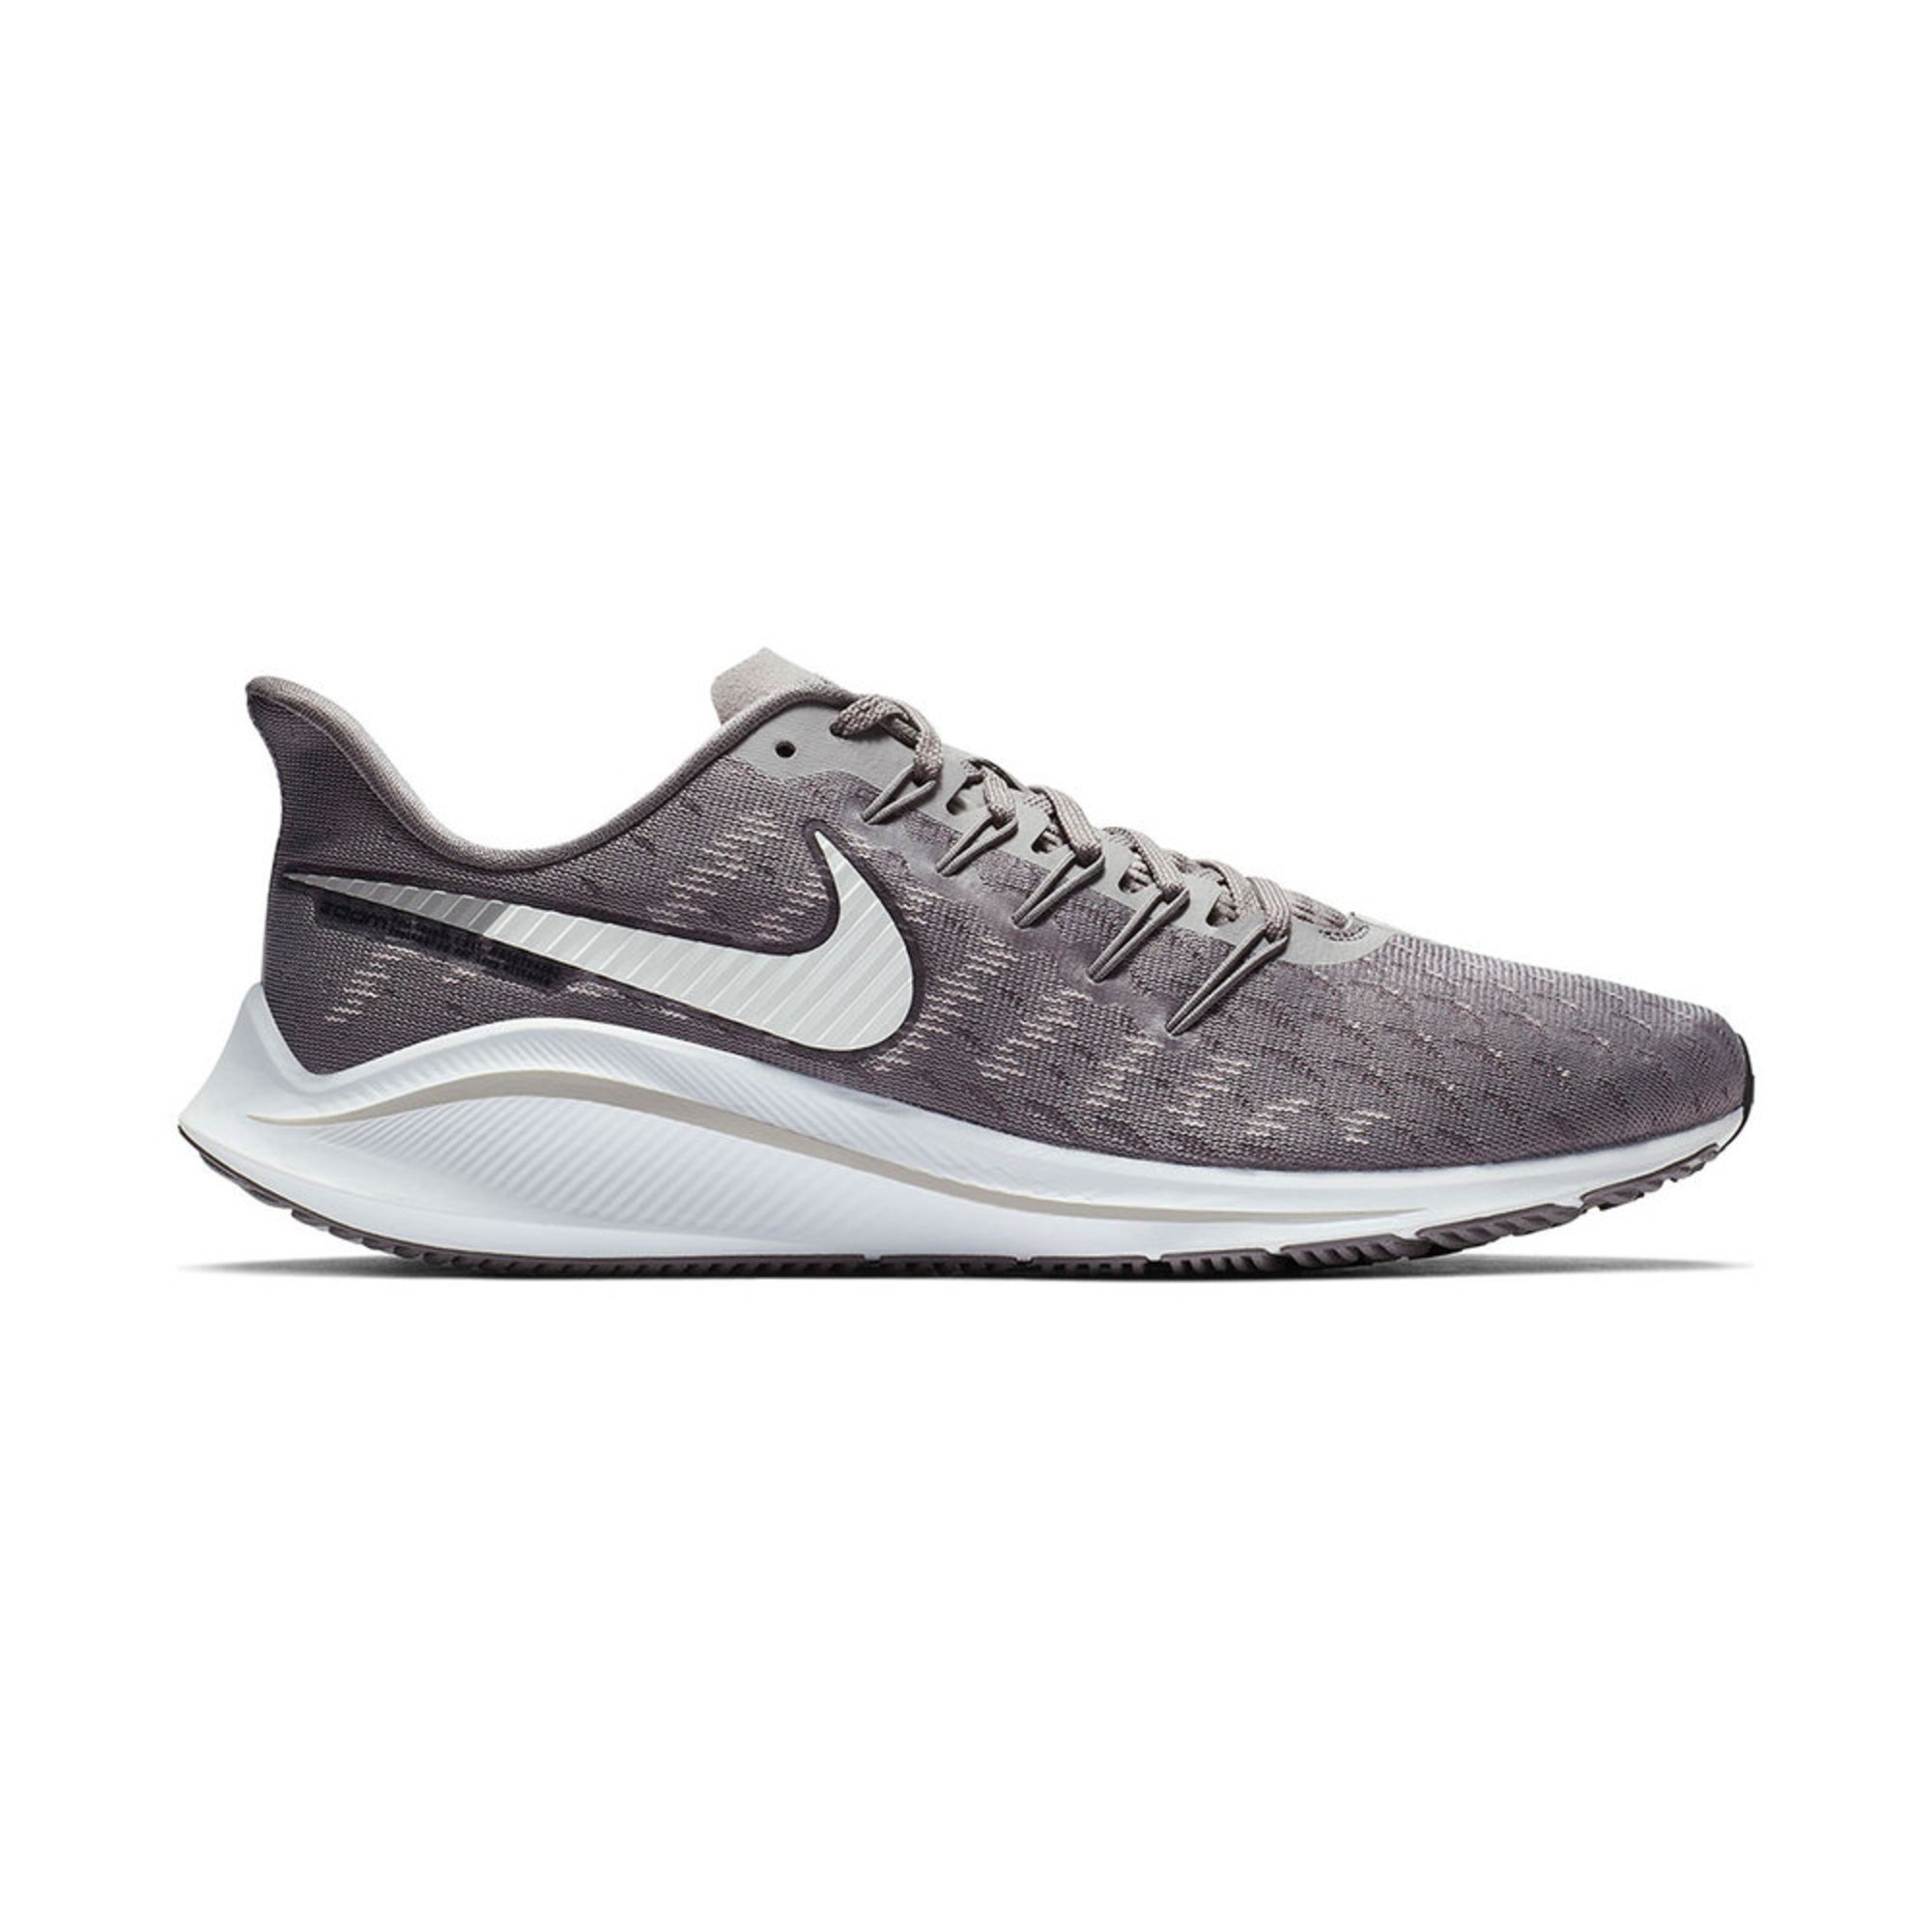 online store 8fc63 2b4d2 Nike. Nike Men s Air Zoom Vomero 14 Running Shoe